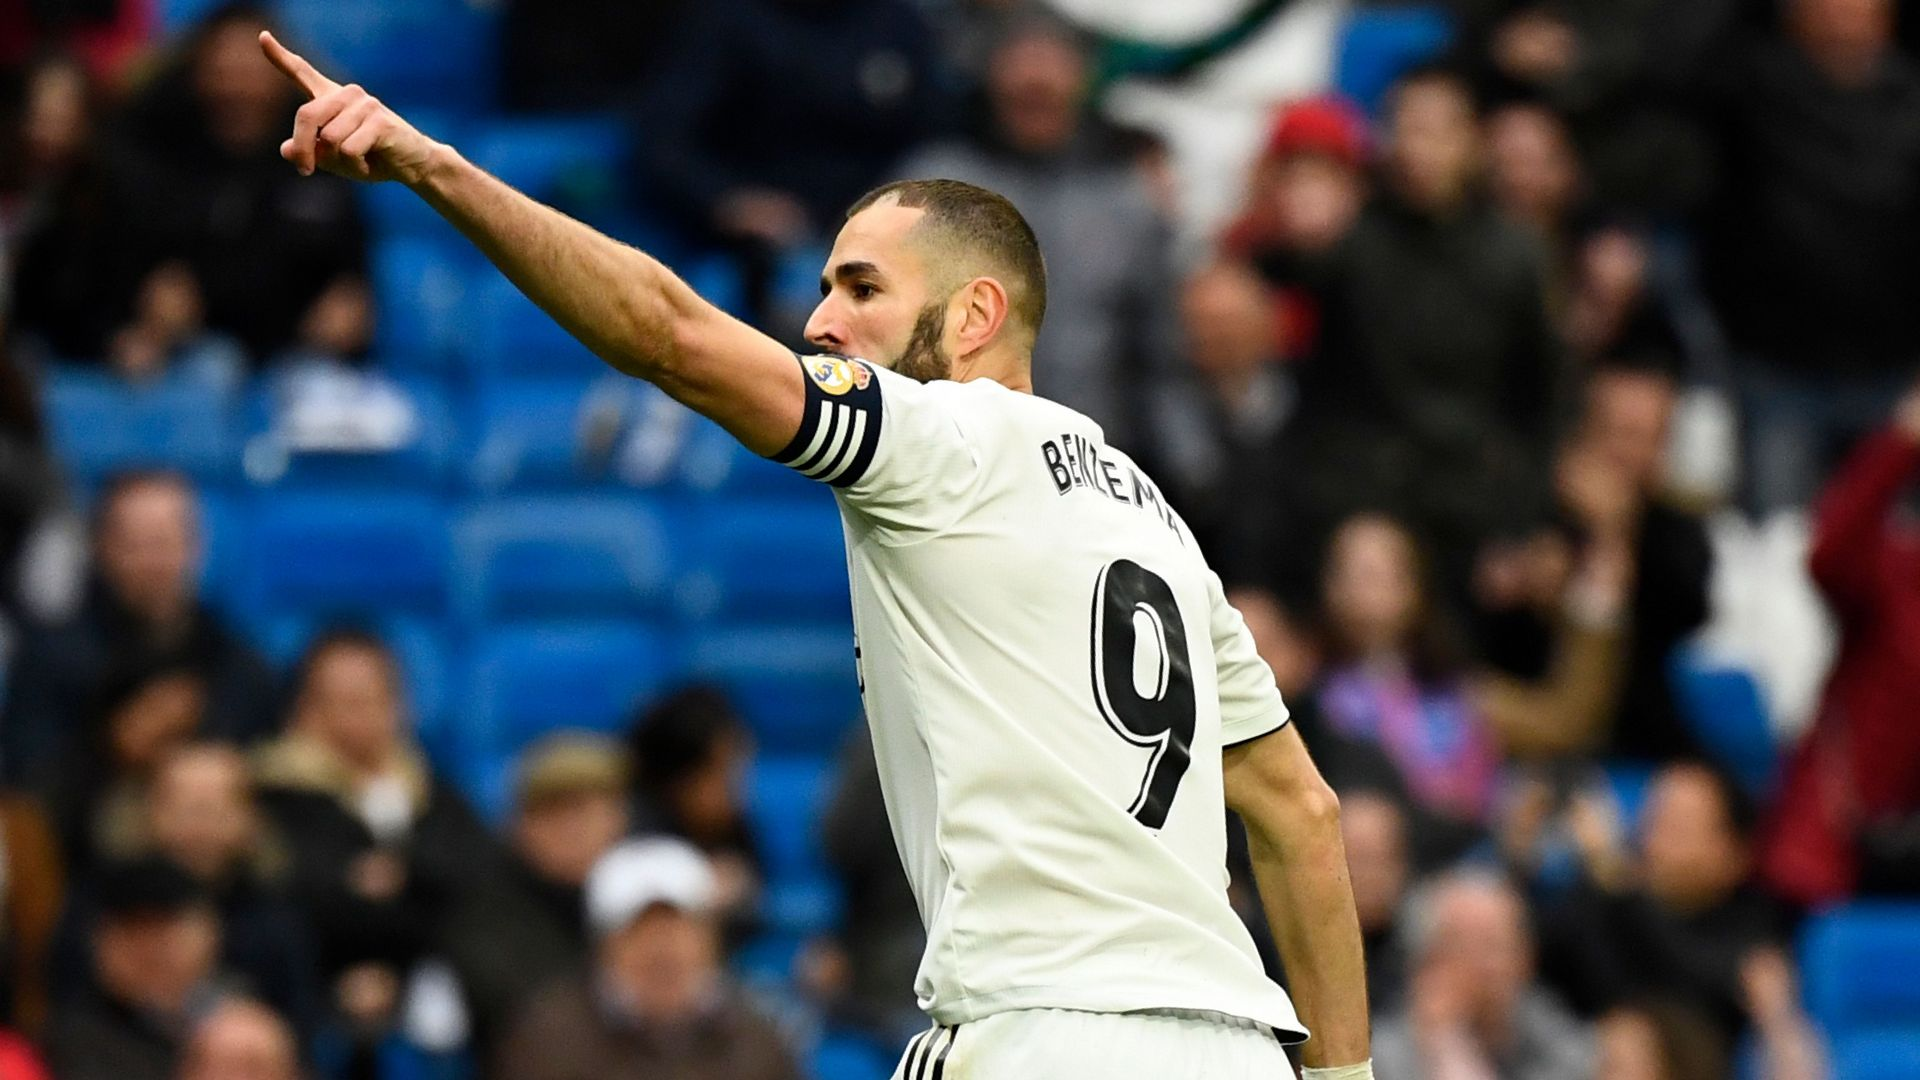 'Benzema is the best No.9 in the world' - Gignac